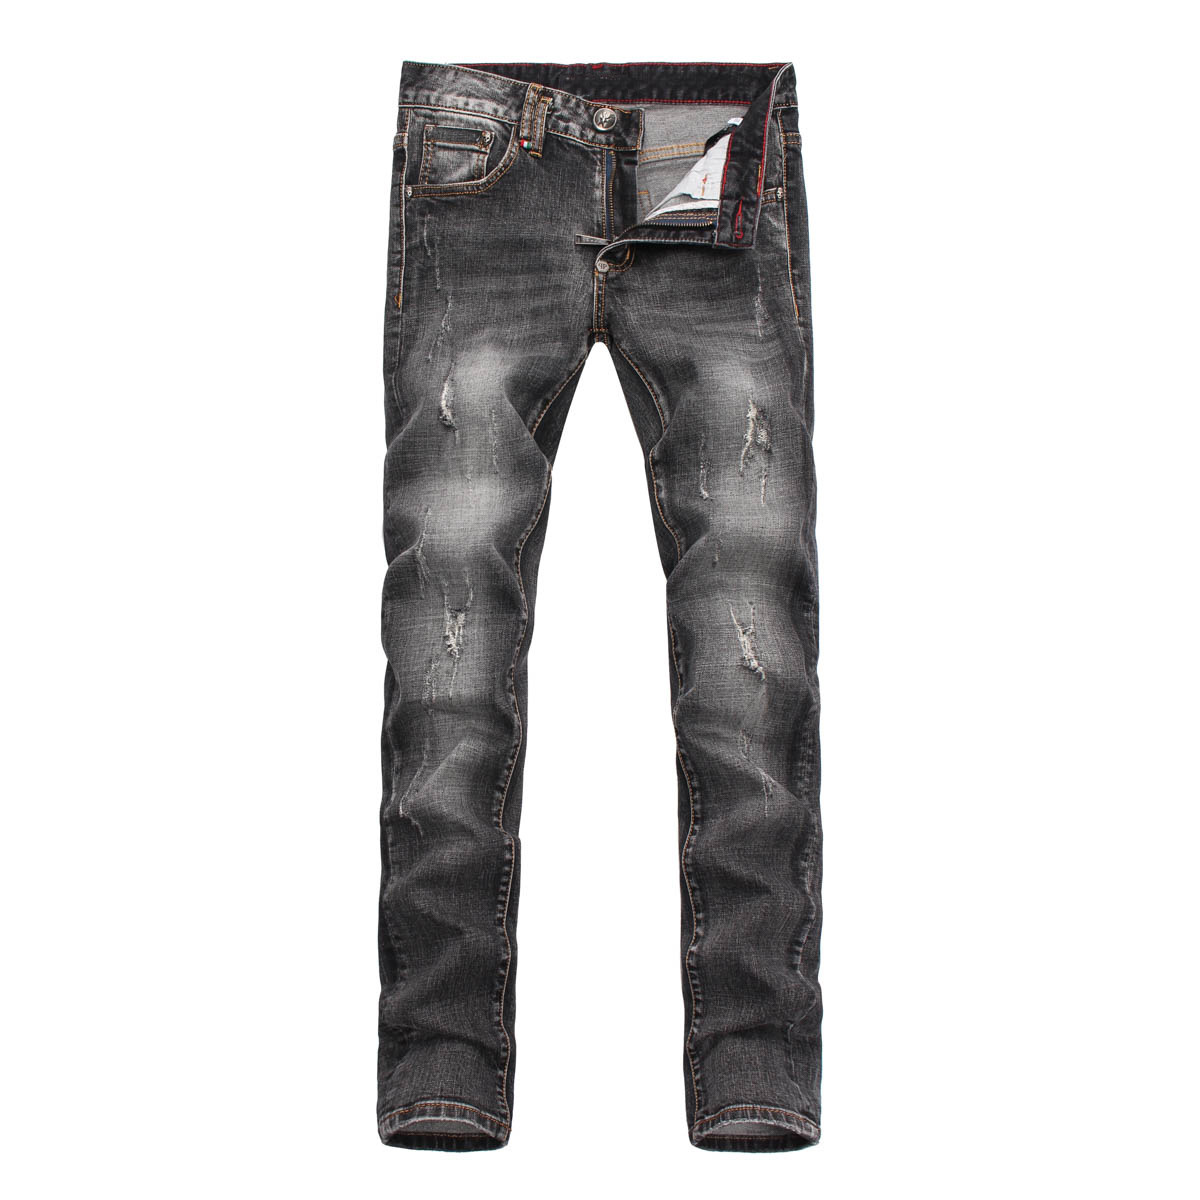 new winter Men's jeans embroidery with hole in Europe and the United States jeans micro play cultivate one's morality  ZK10063 summer men s jeans embroidery with hole in europe and the united states jeans micro play cultivate bull puncher knickers zk10082